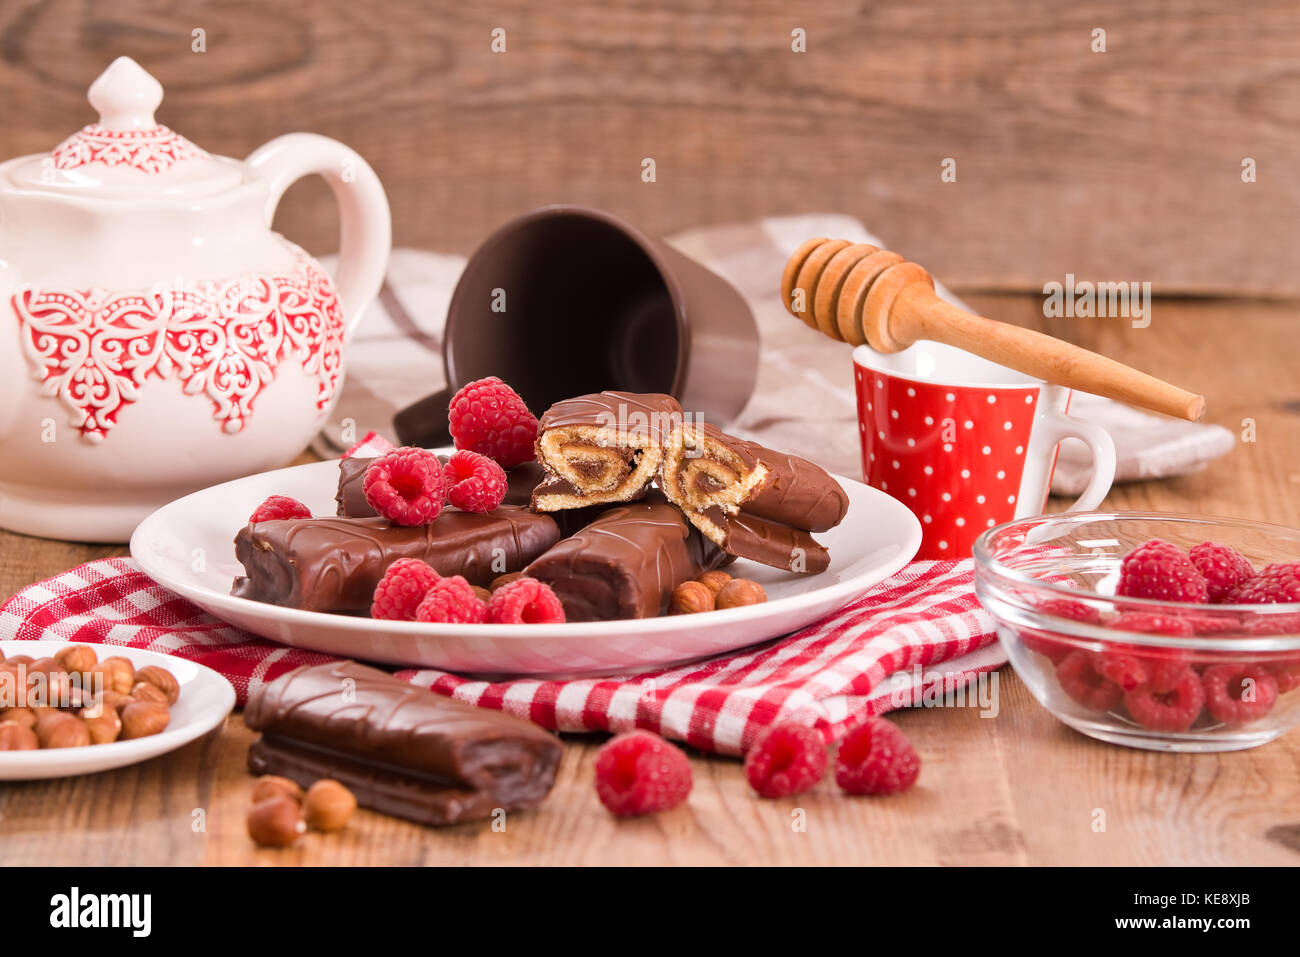 Chocolate rolls with hazelnuts and raspberries. - Stock Image